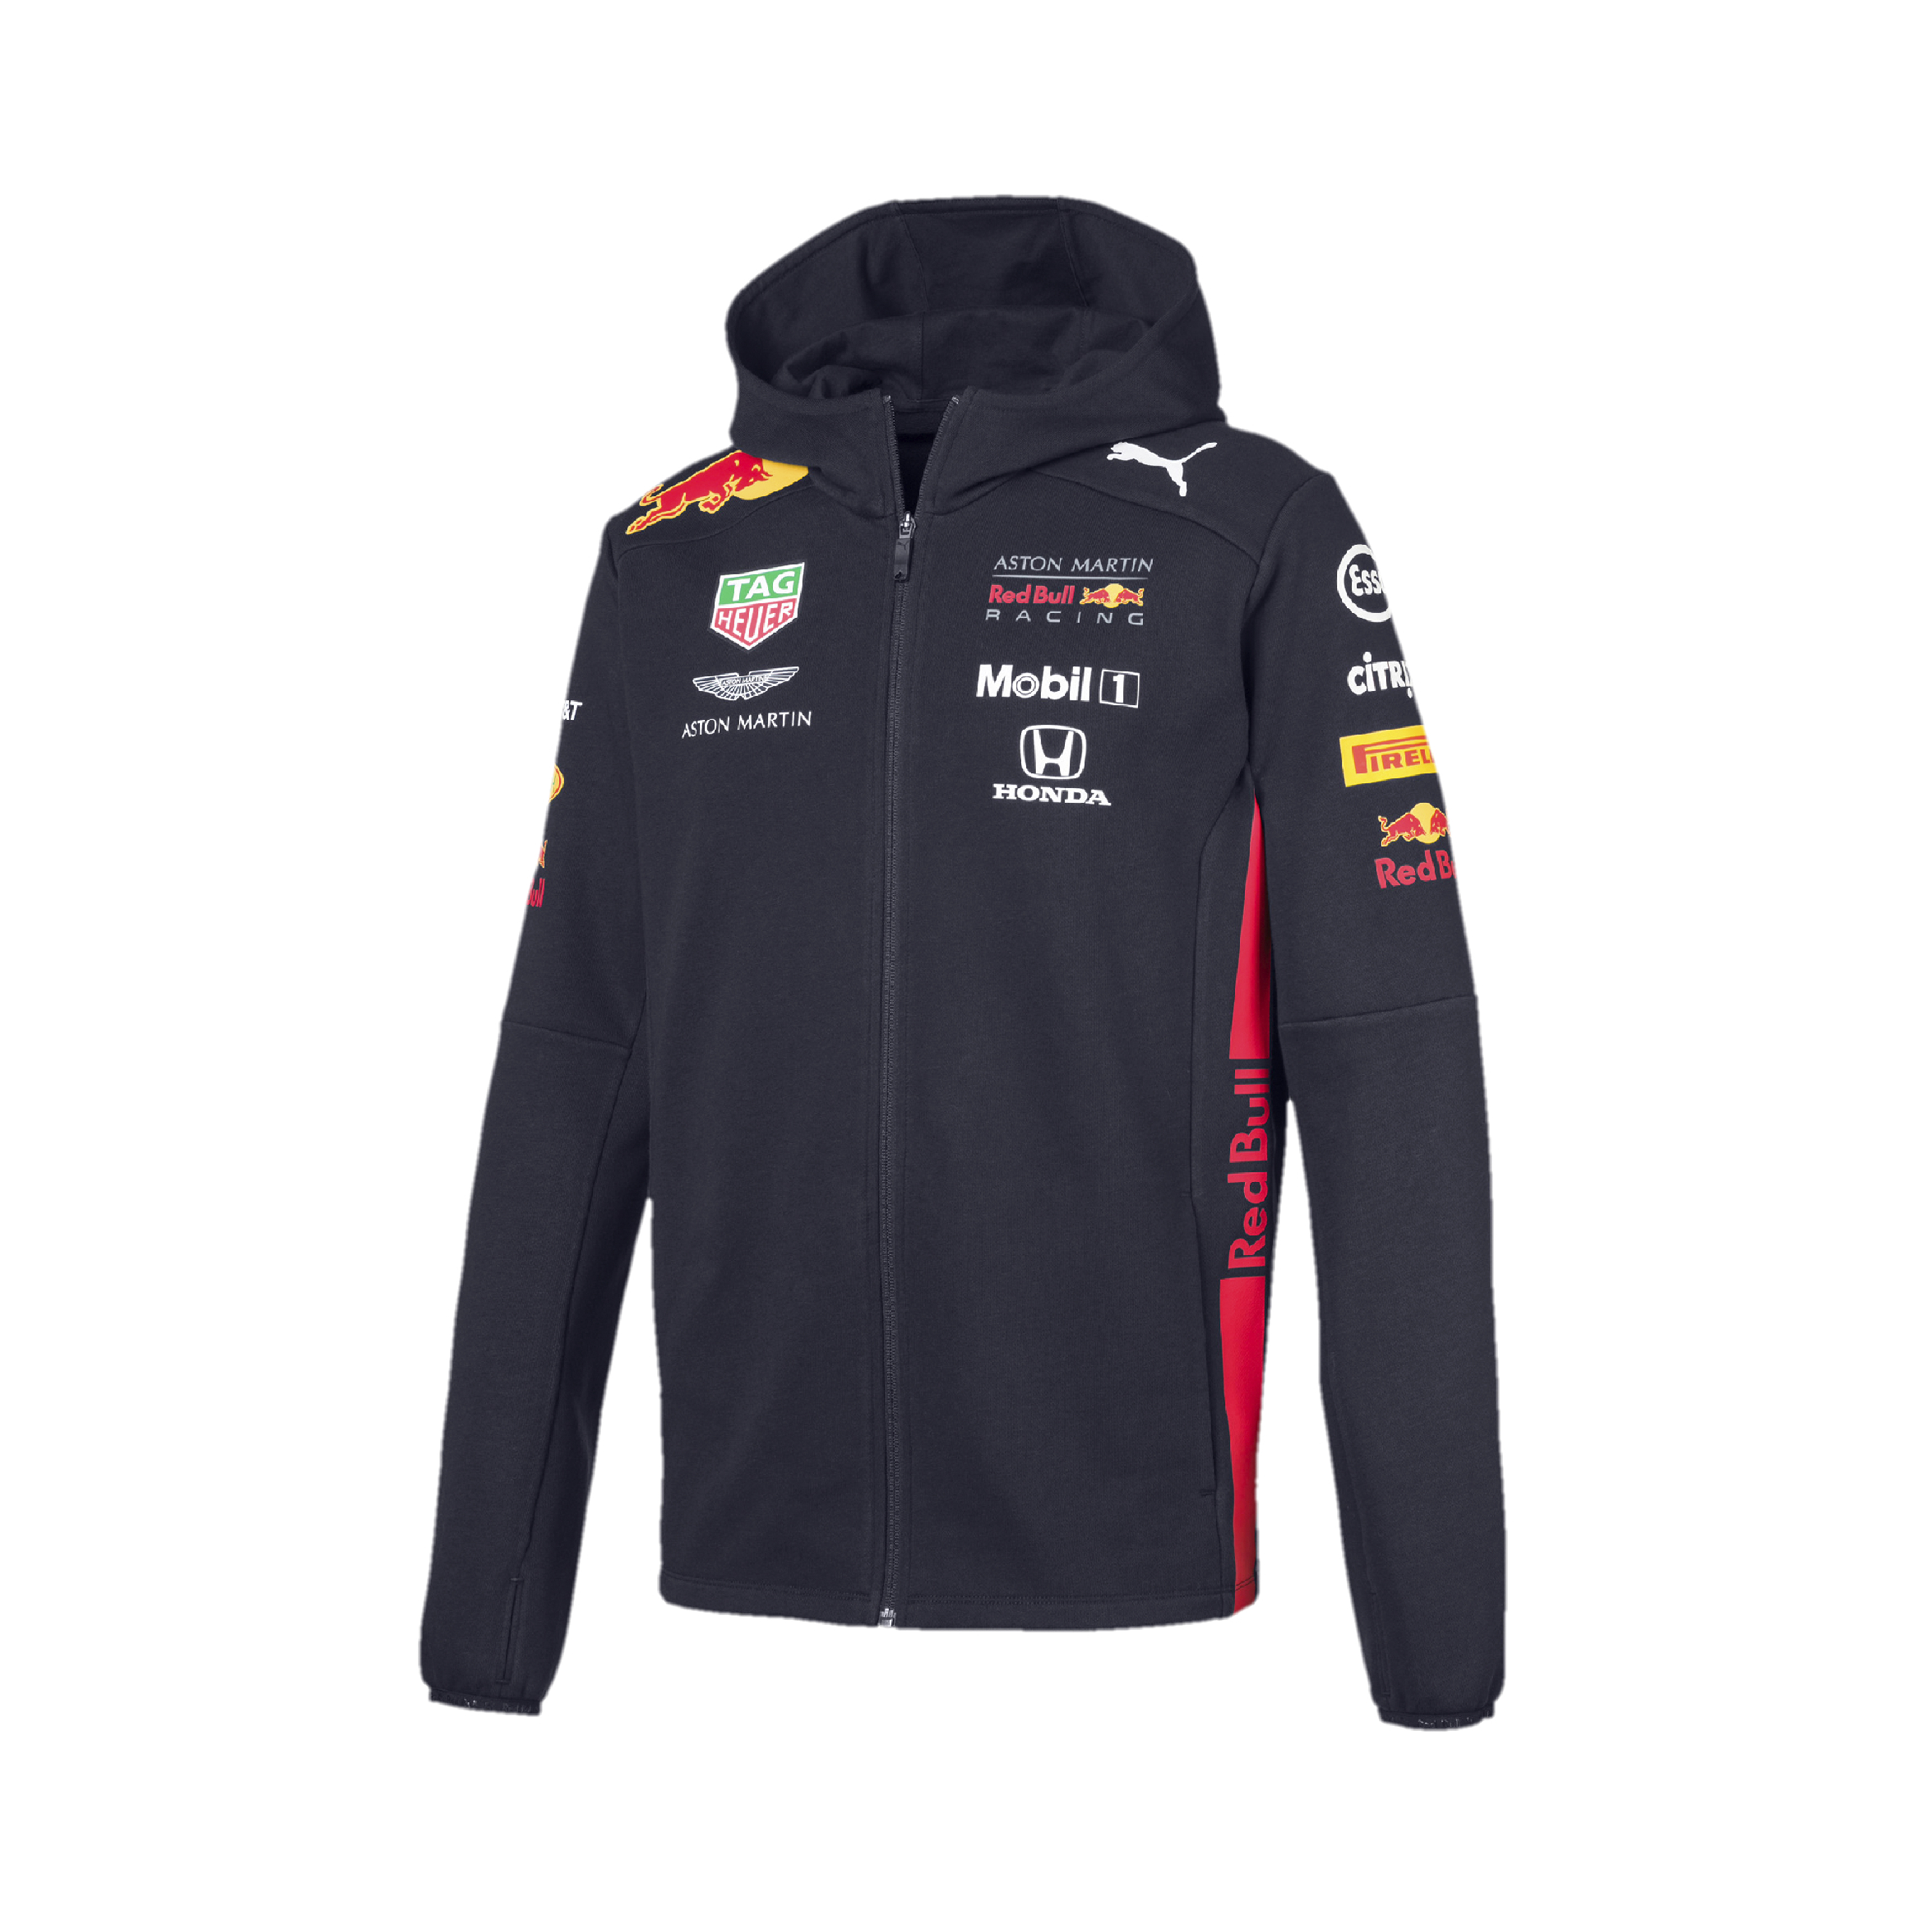 New! 2019 Red Bull Racing F1 Formula One